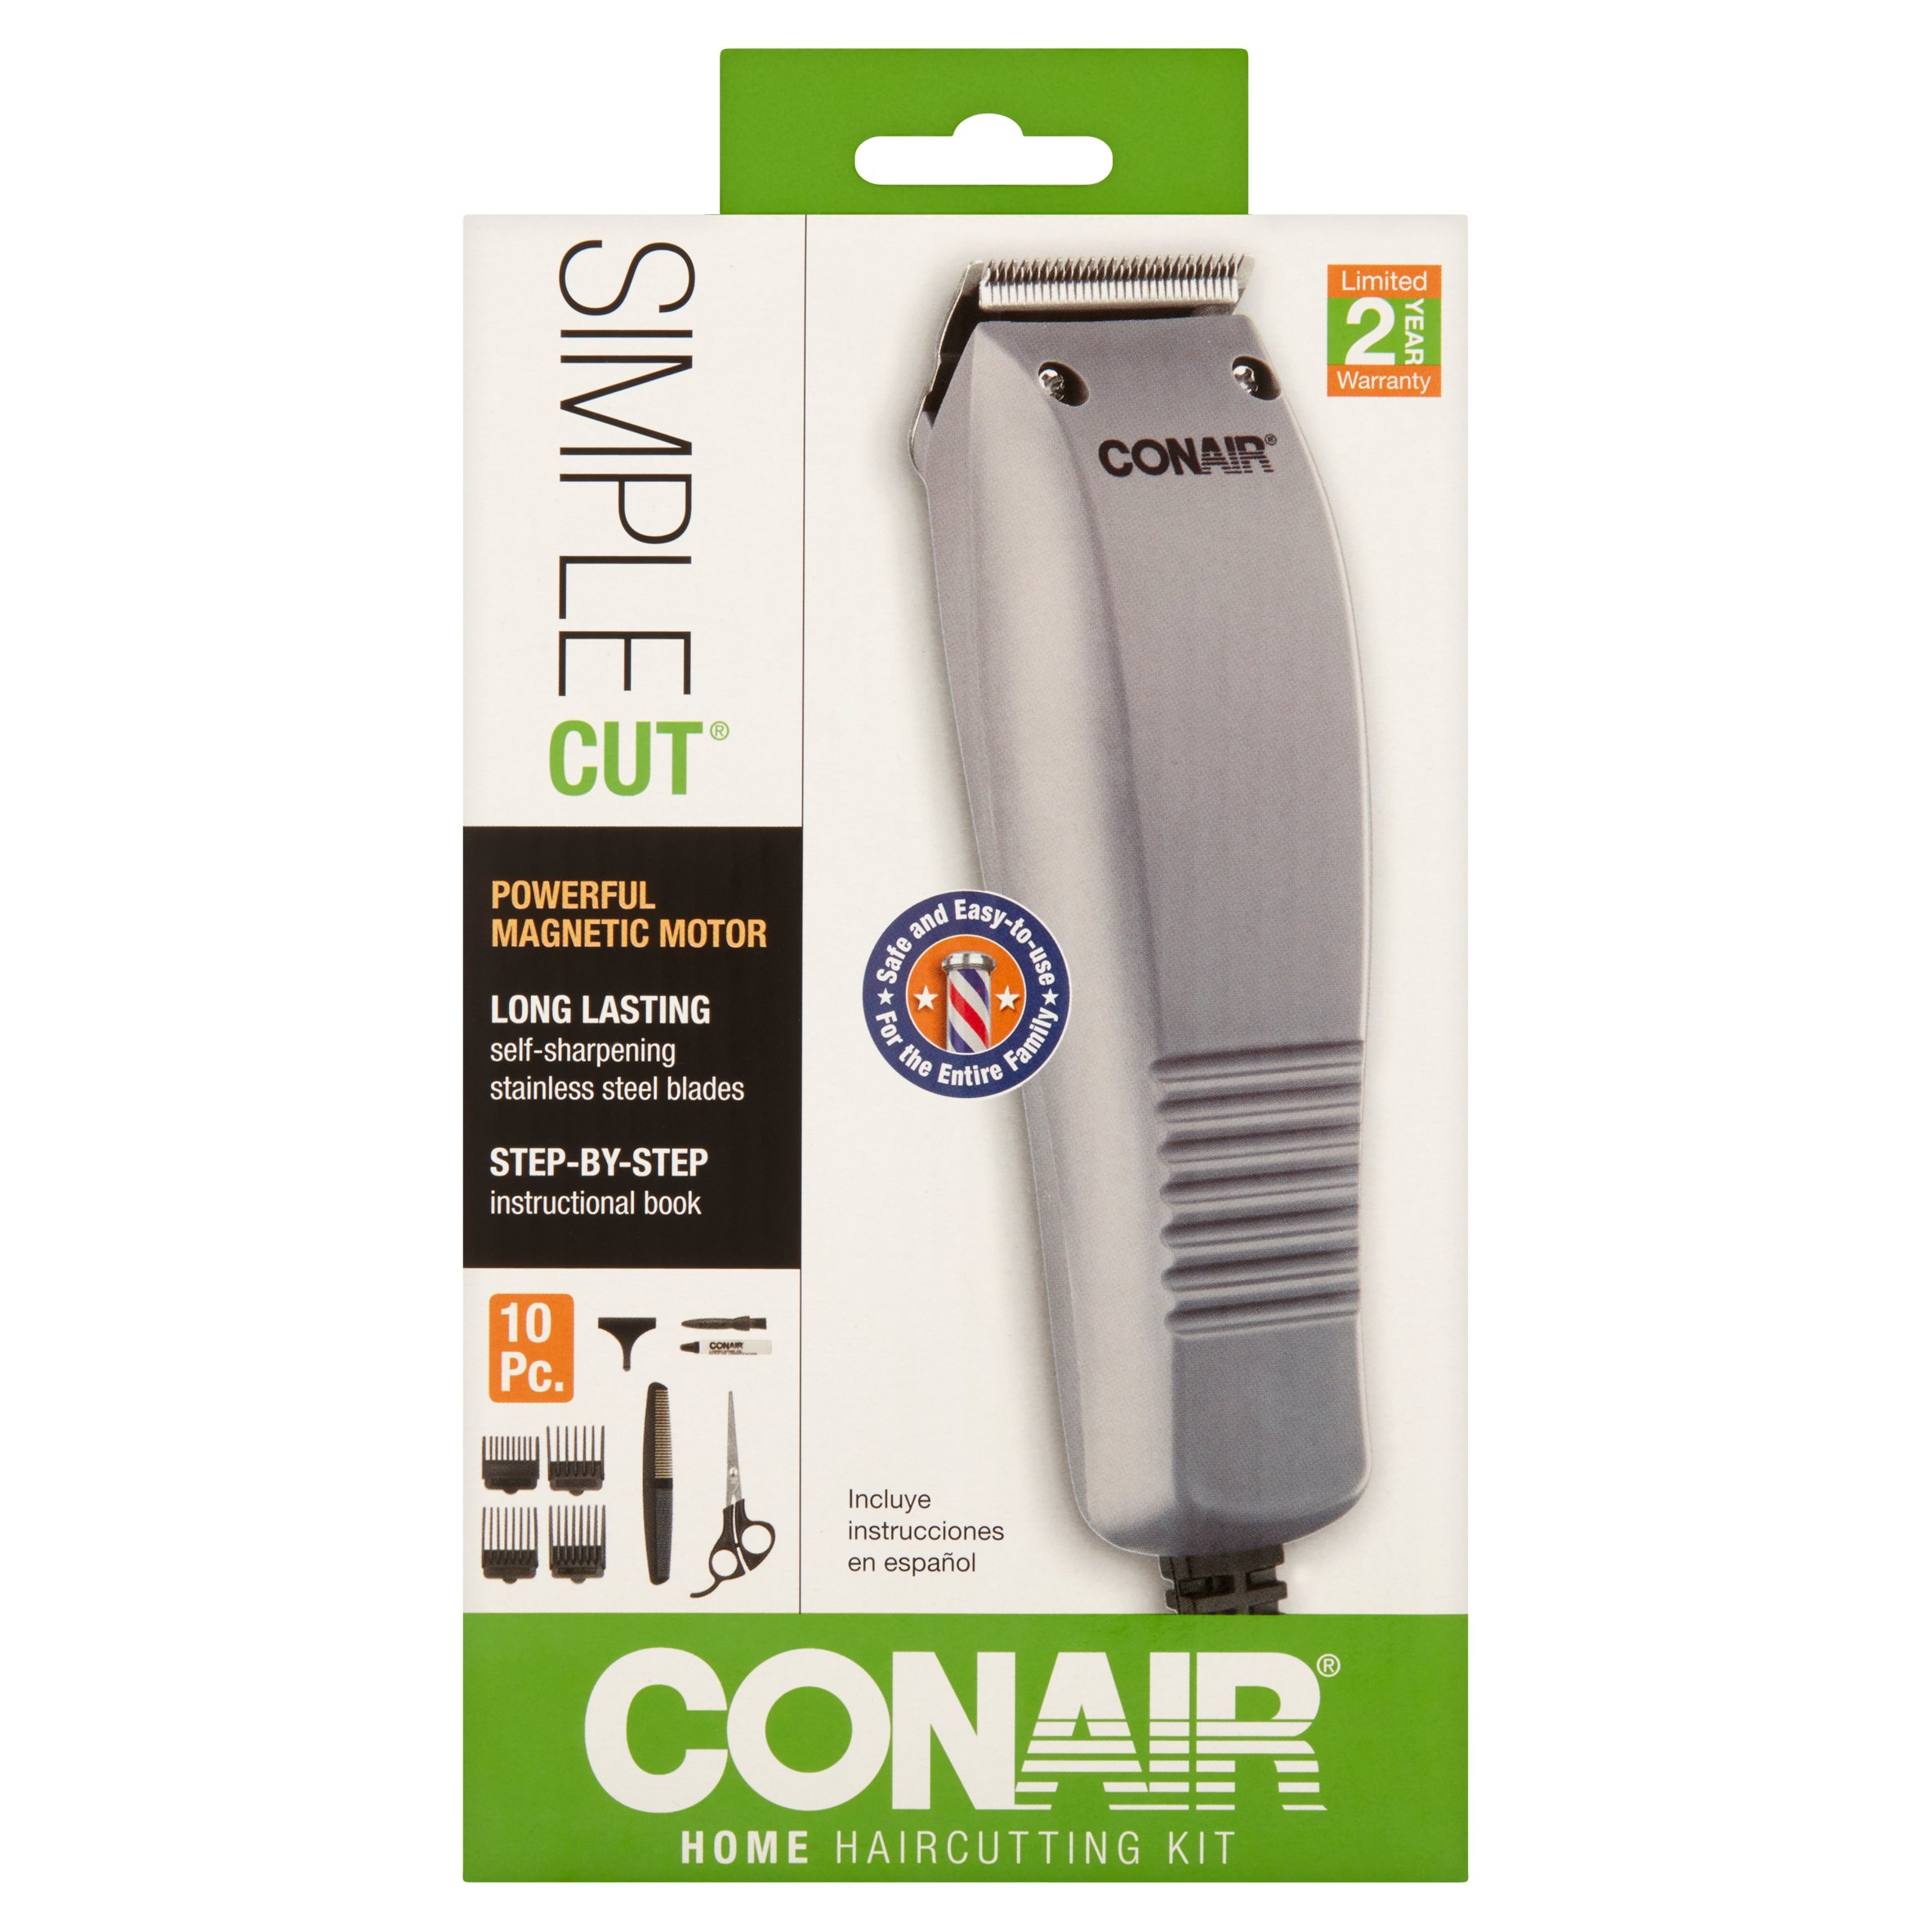 Conair Simple Cut Home Haircutting Kit